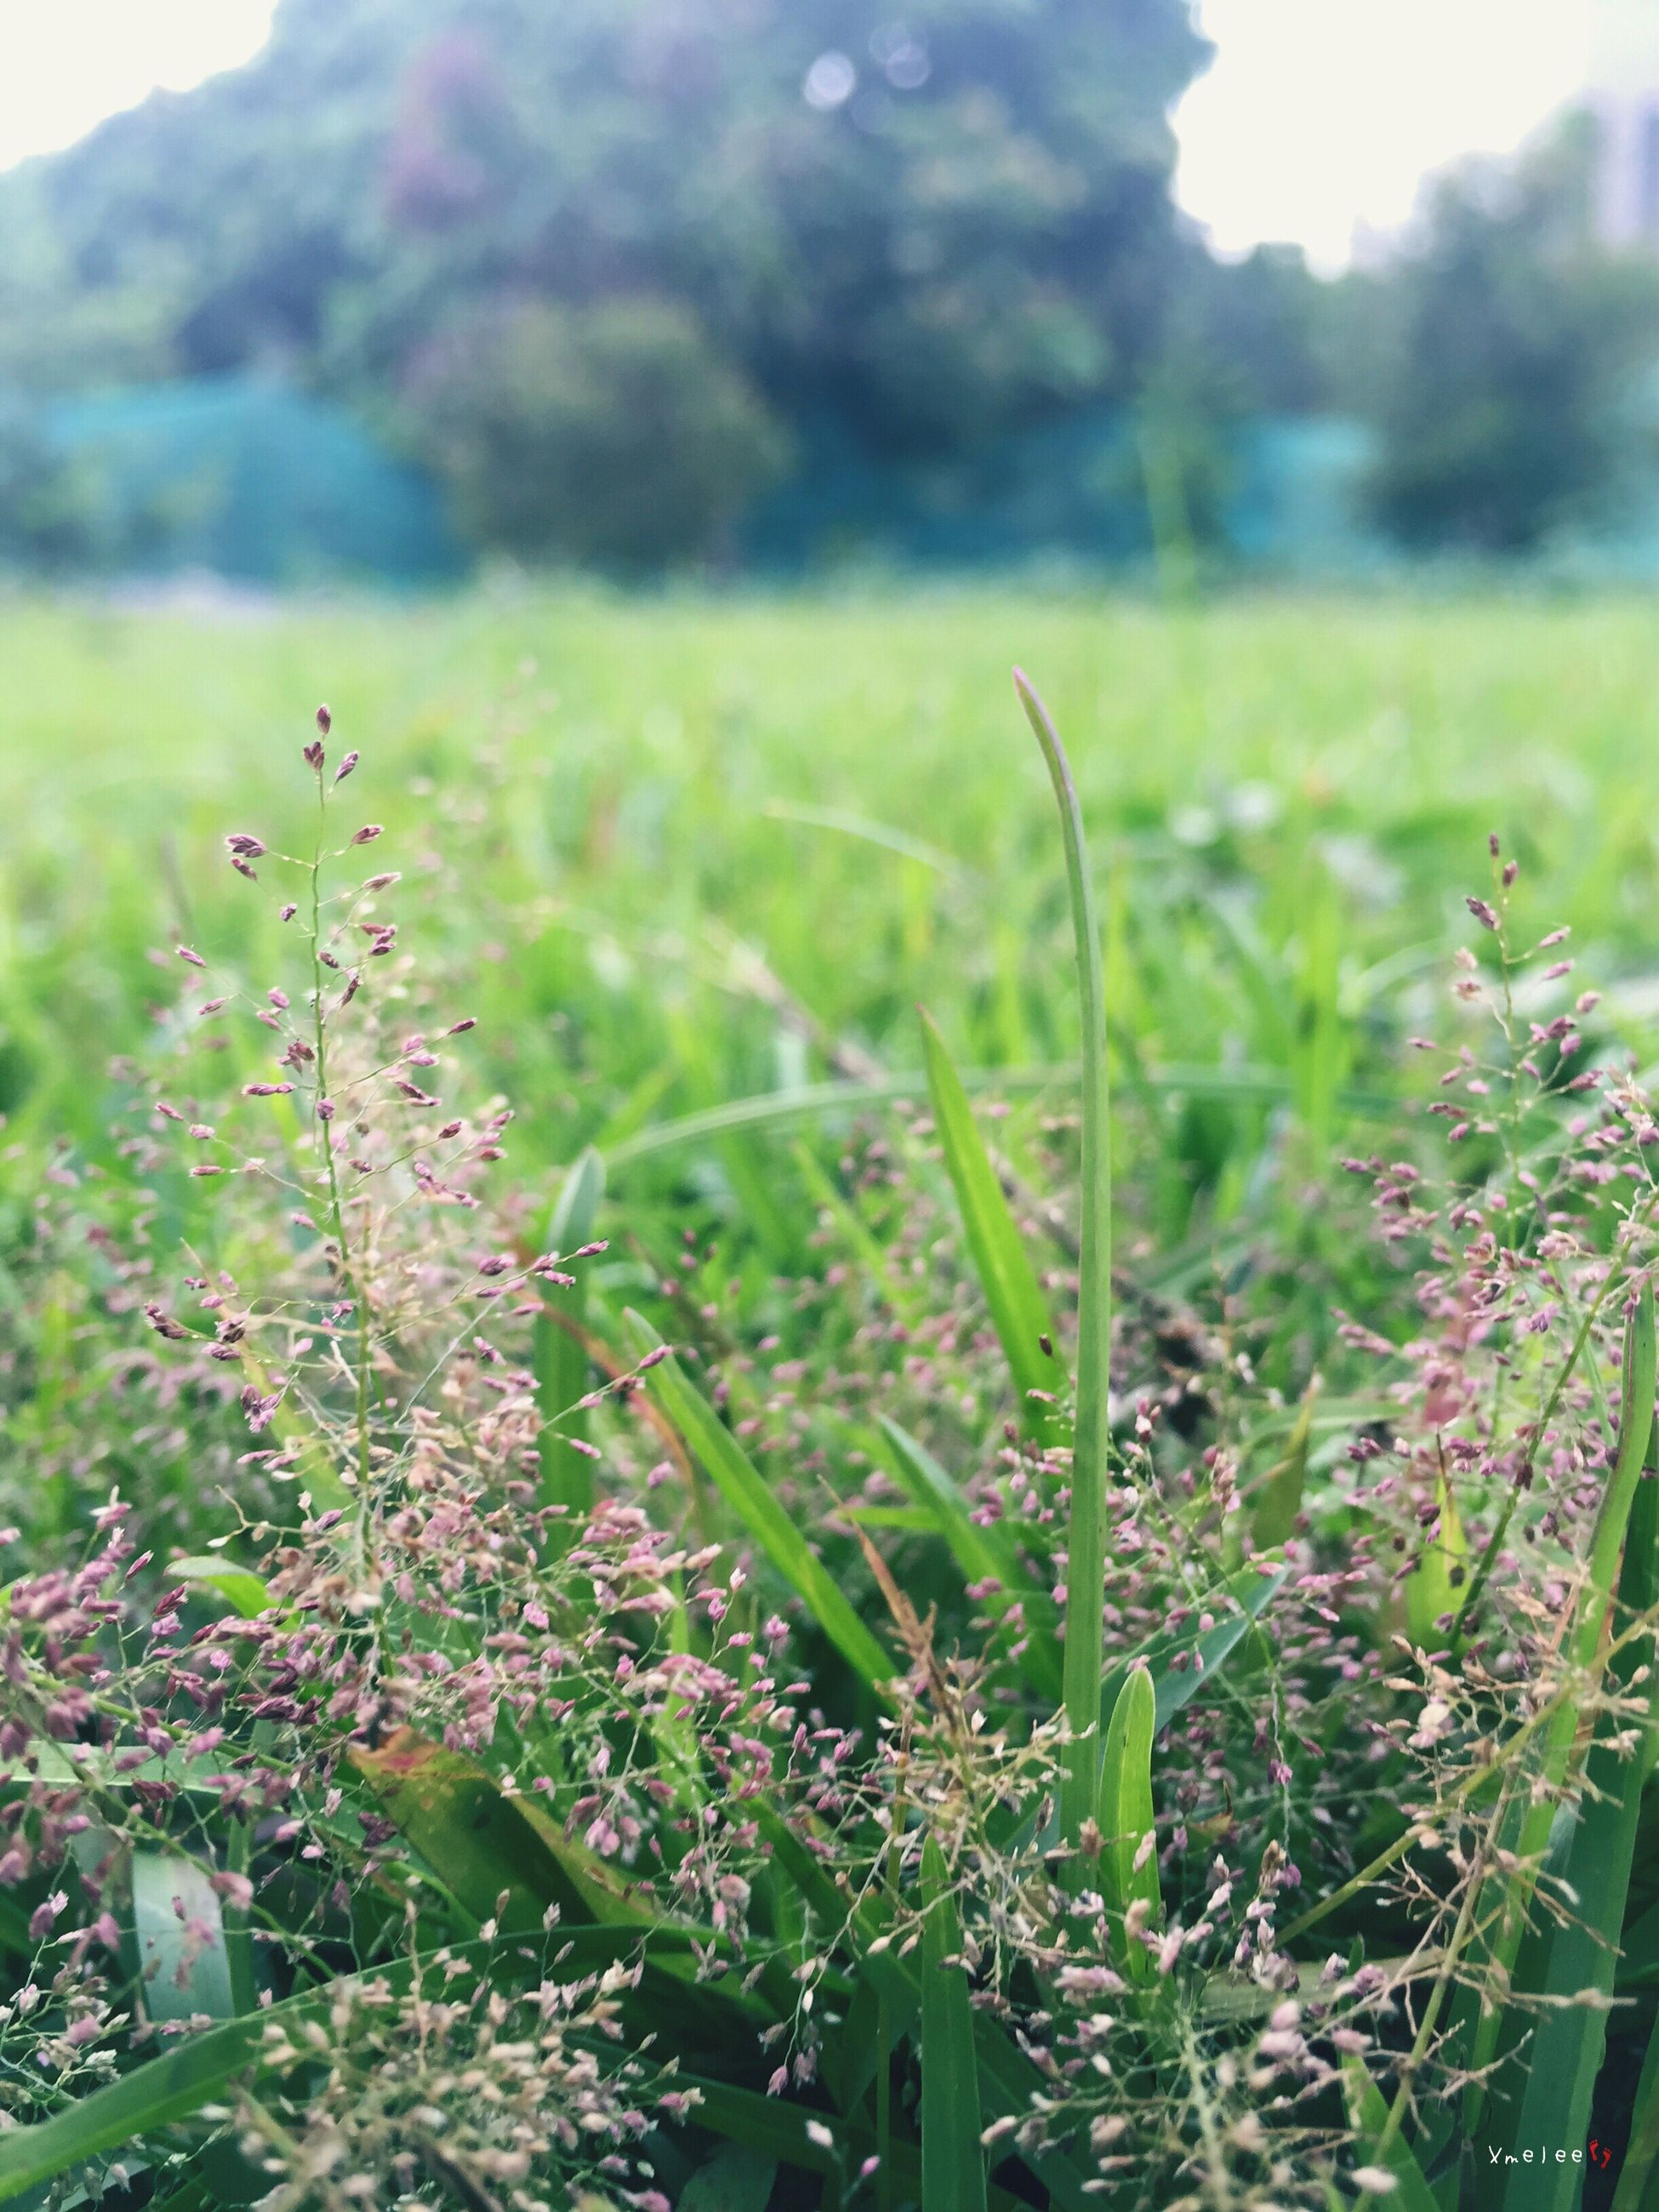 growth, grass, plant, focus on foreground, nature, field, close-up, beauty in nature, green color, tranquility, fragility, flower, selective focus, freshness, growing, day, stem, outdoors, grassy, no people